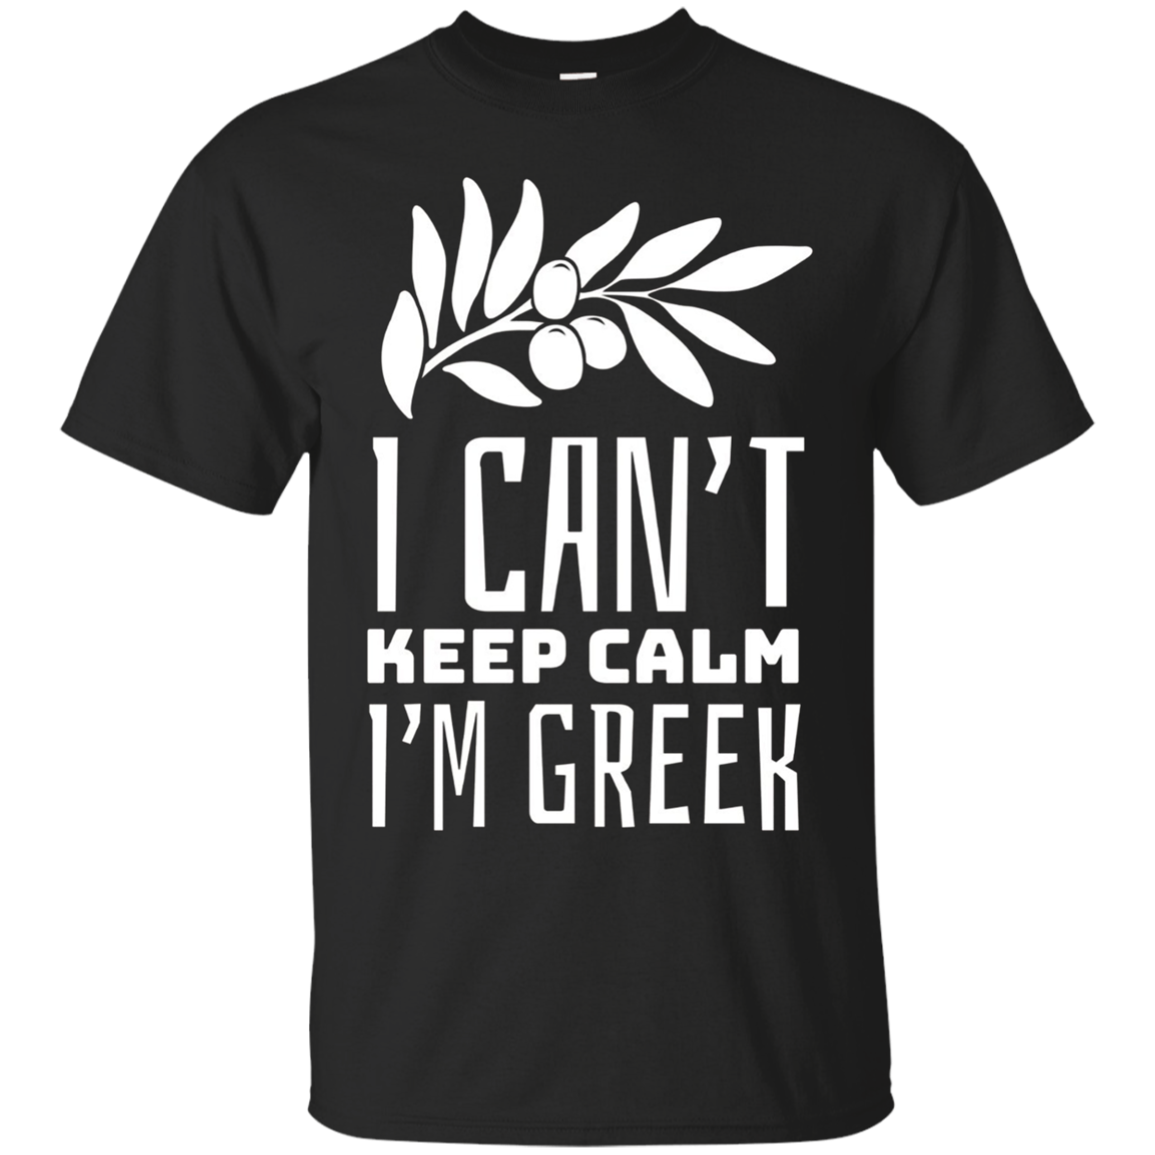 I Can't Keep Calm I'm Greek T shirt Gift